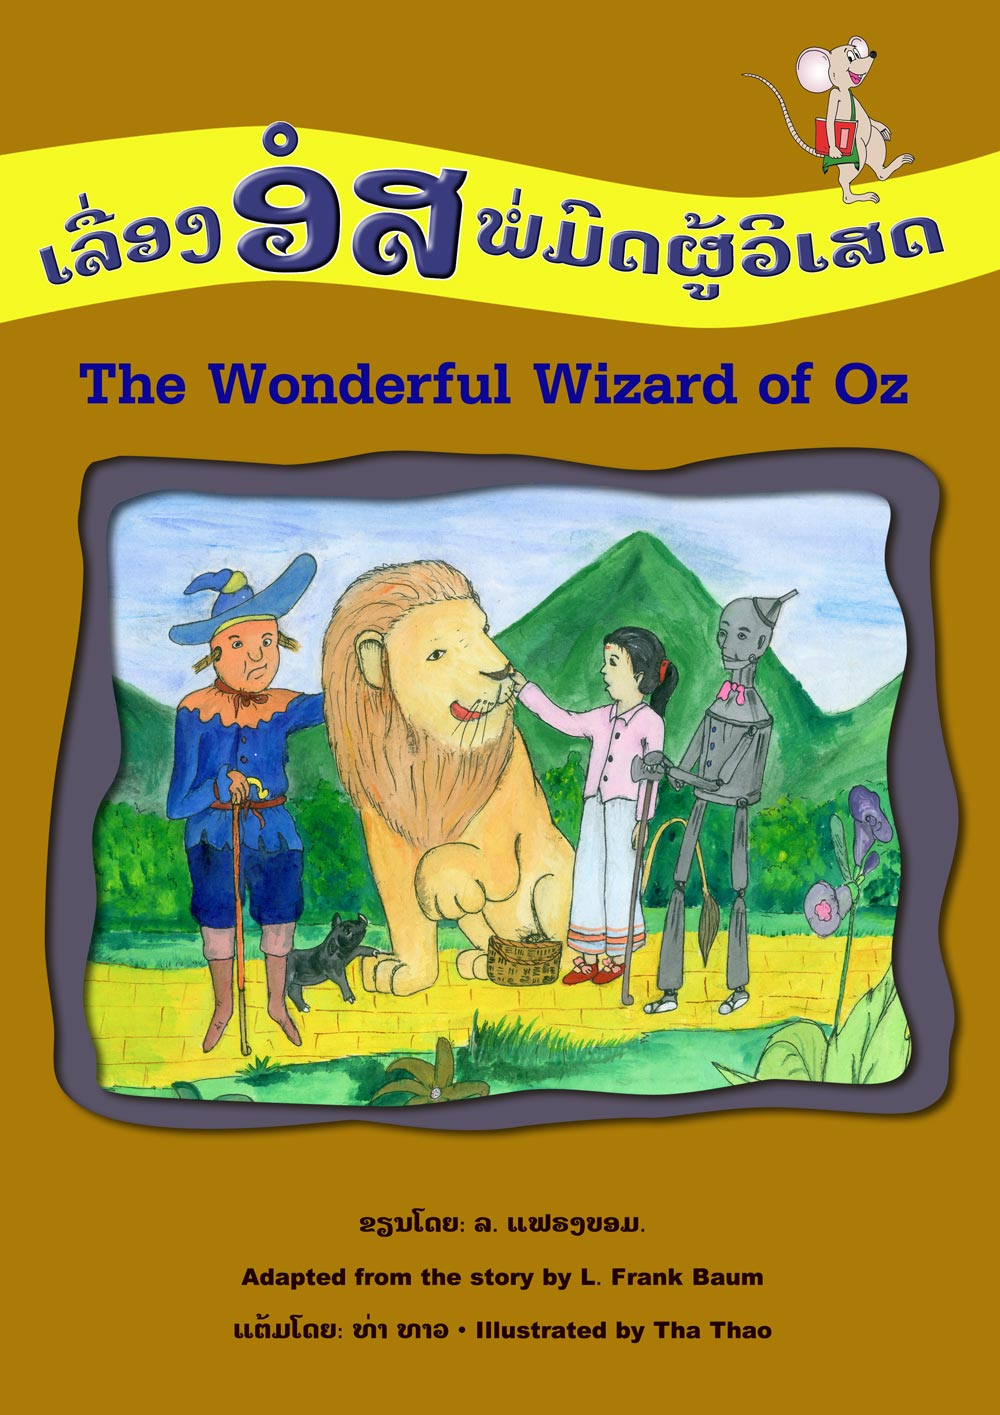 wonderful wizard of oz book essay questions In the wonderful wizard of oz another classic children's book the wonderful wizard of oz essay - people start their lives with open eyes.